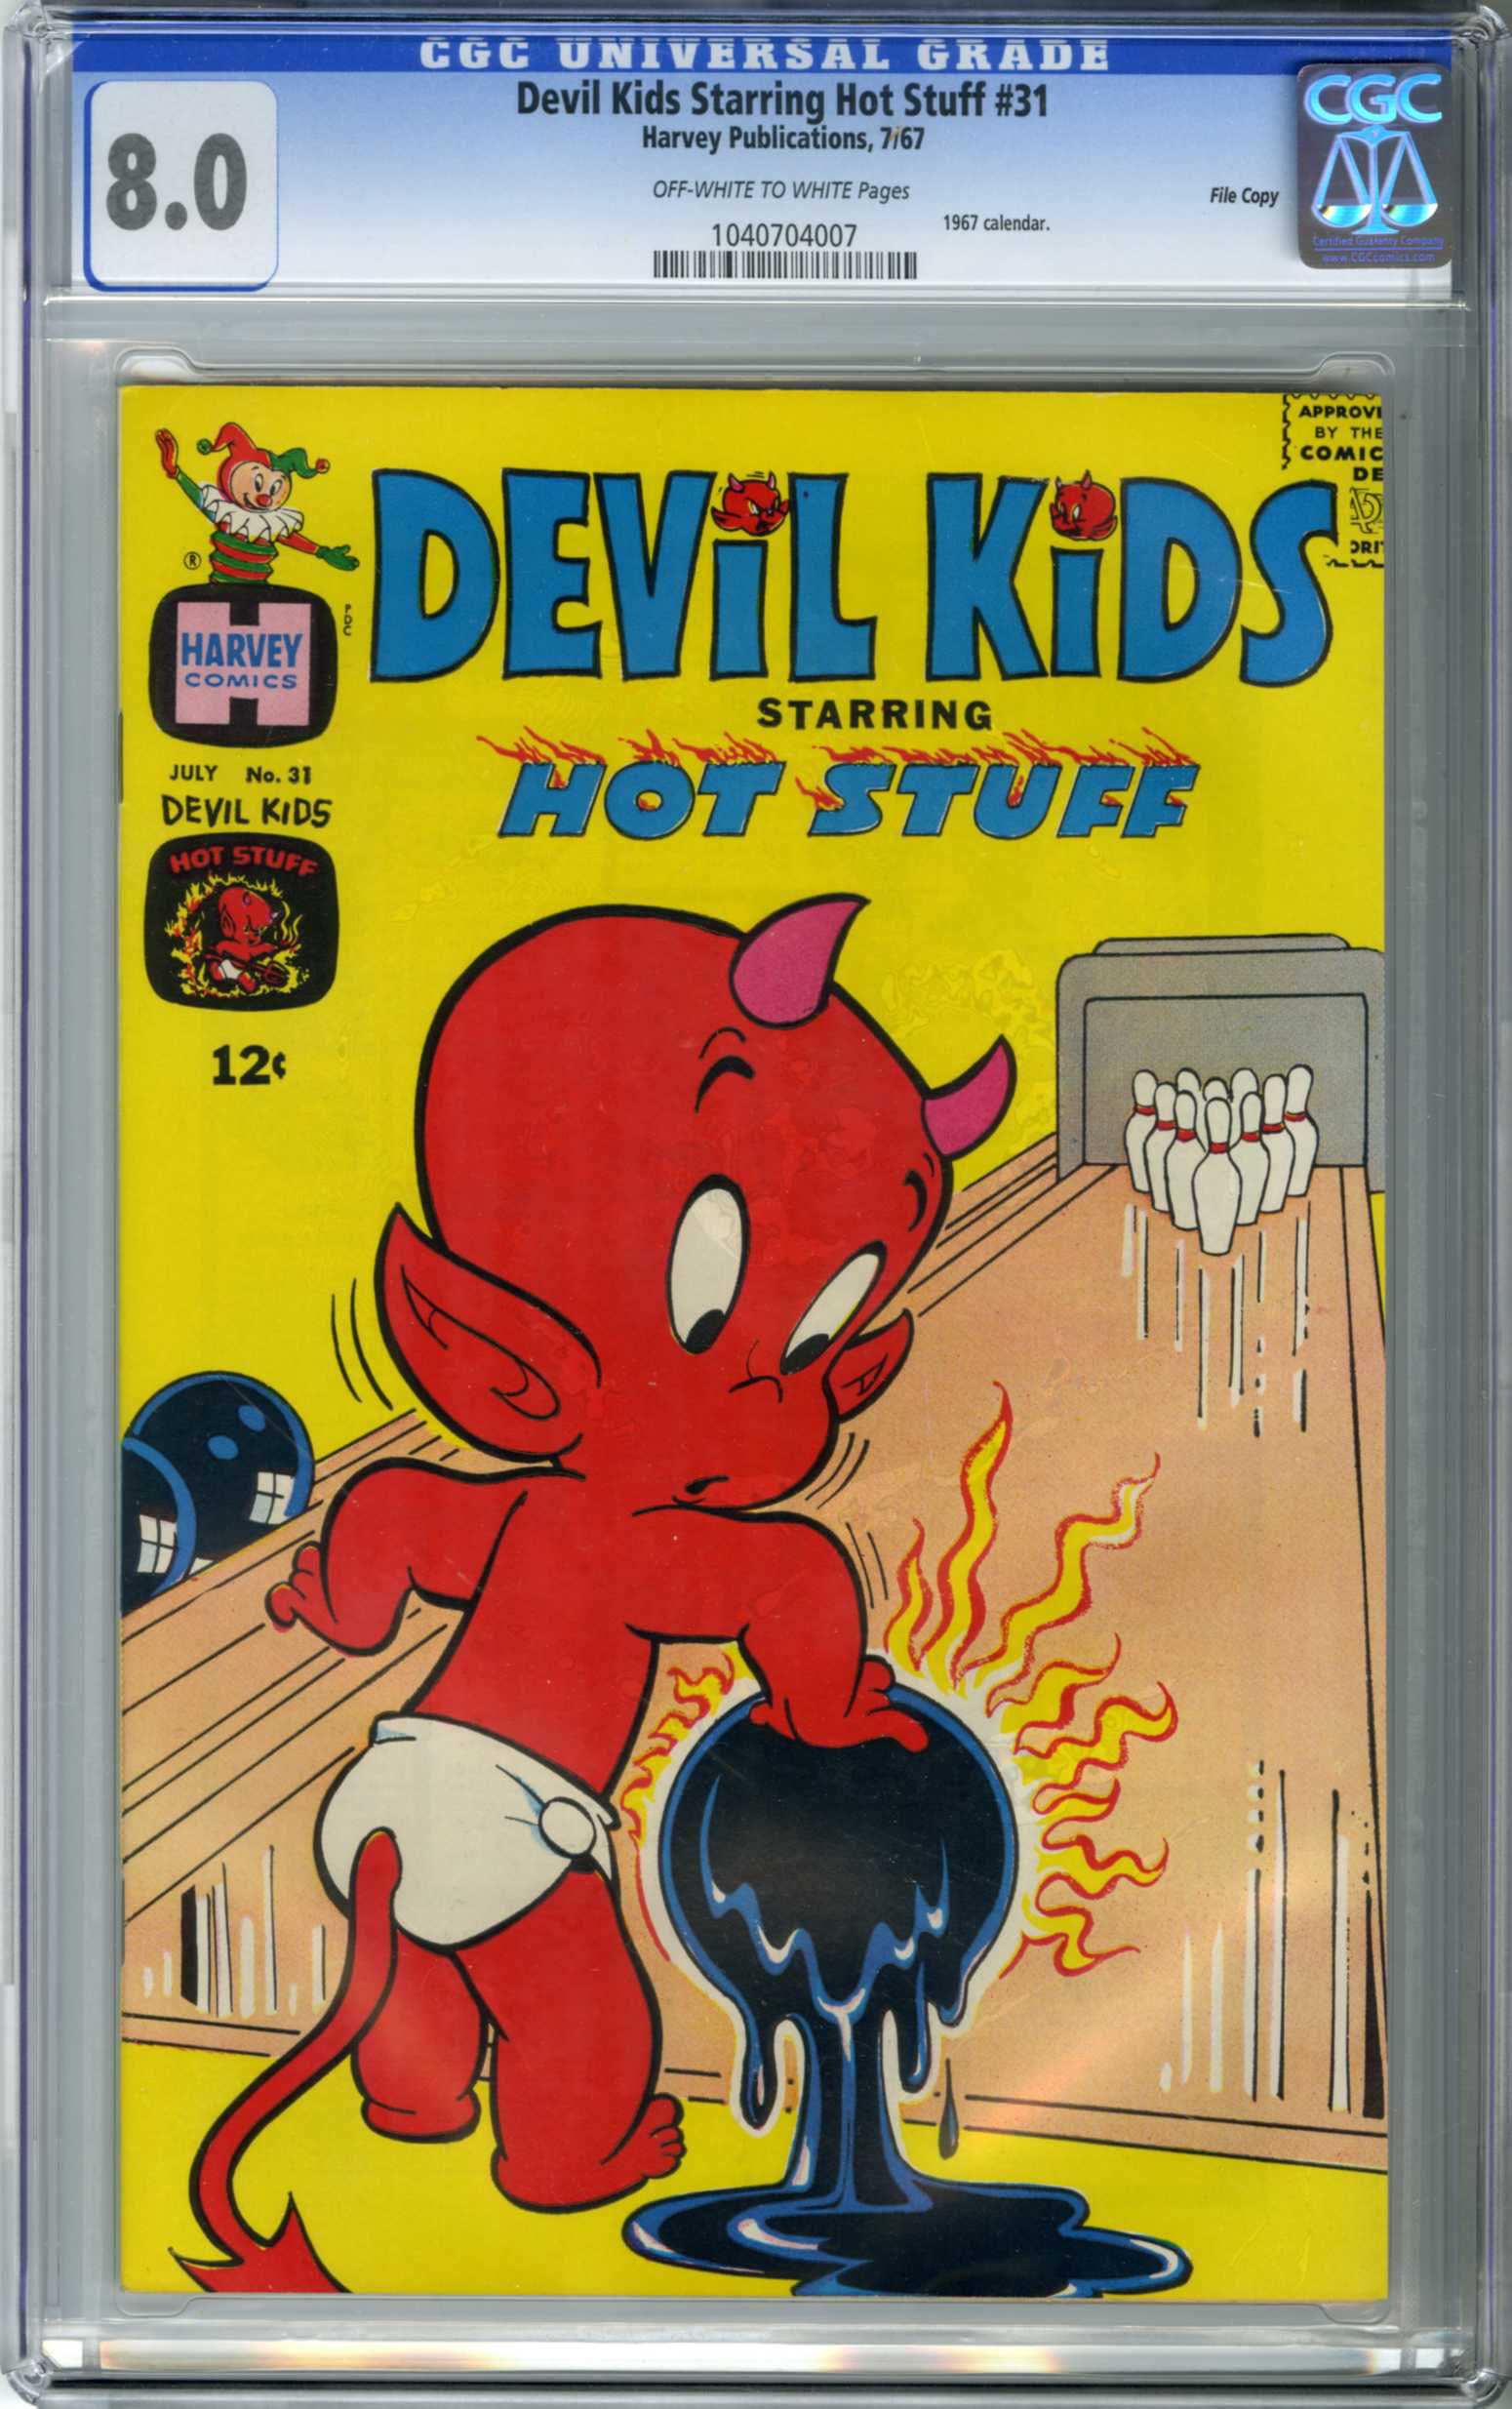 DEVIL KIDS STARRING HOT STUFF #31 (1967) CGC VF 8.0 OWW Pages FILE COPY/CALENDAR